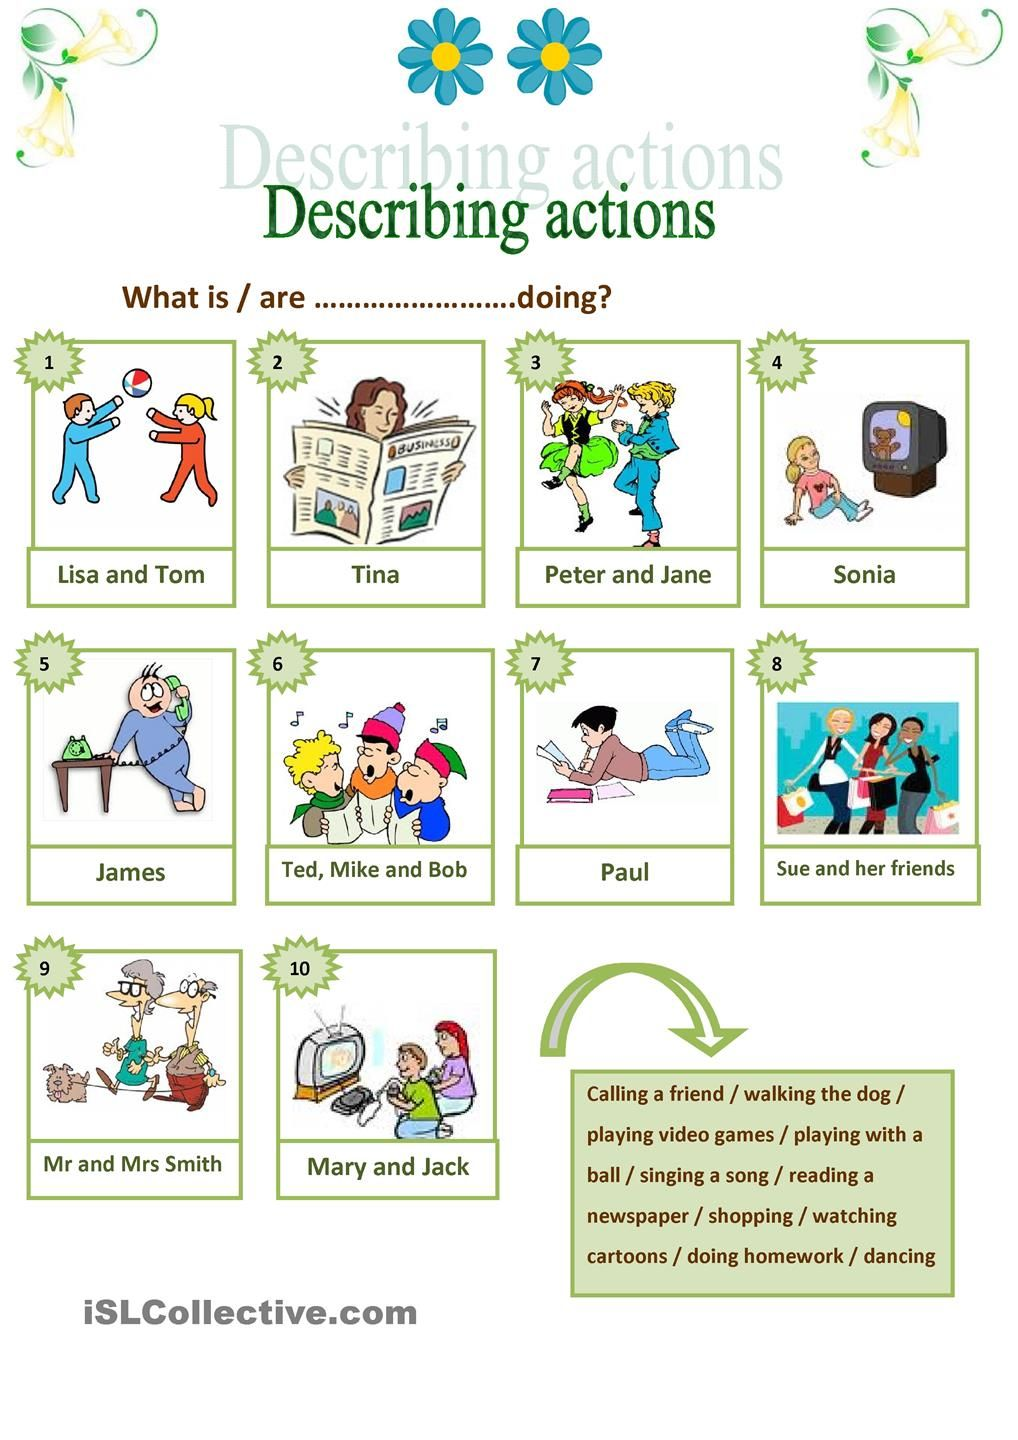 Describing Actions Conversation Cards Learn Swedish Continuity [ 1440 x 1018 Pixel ]